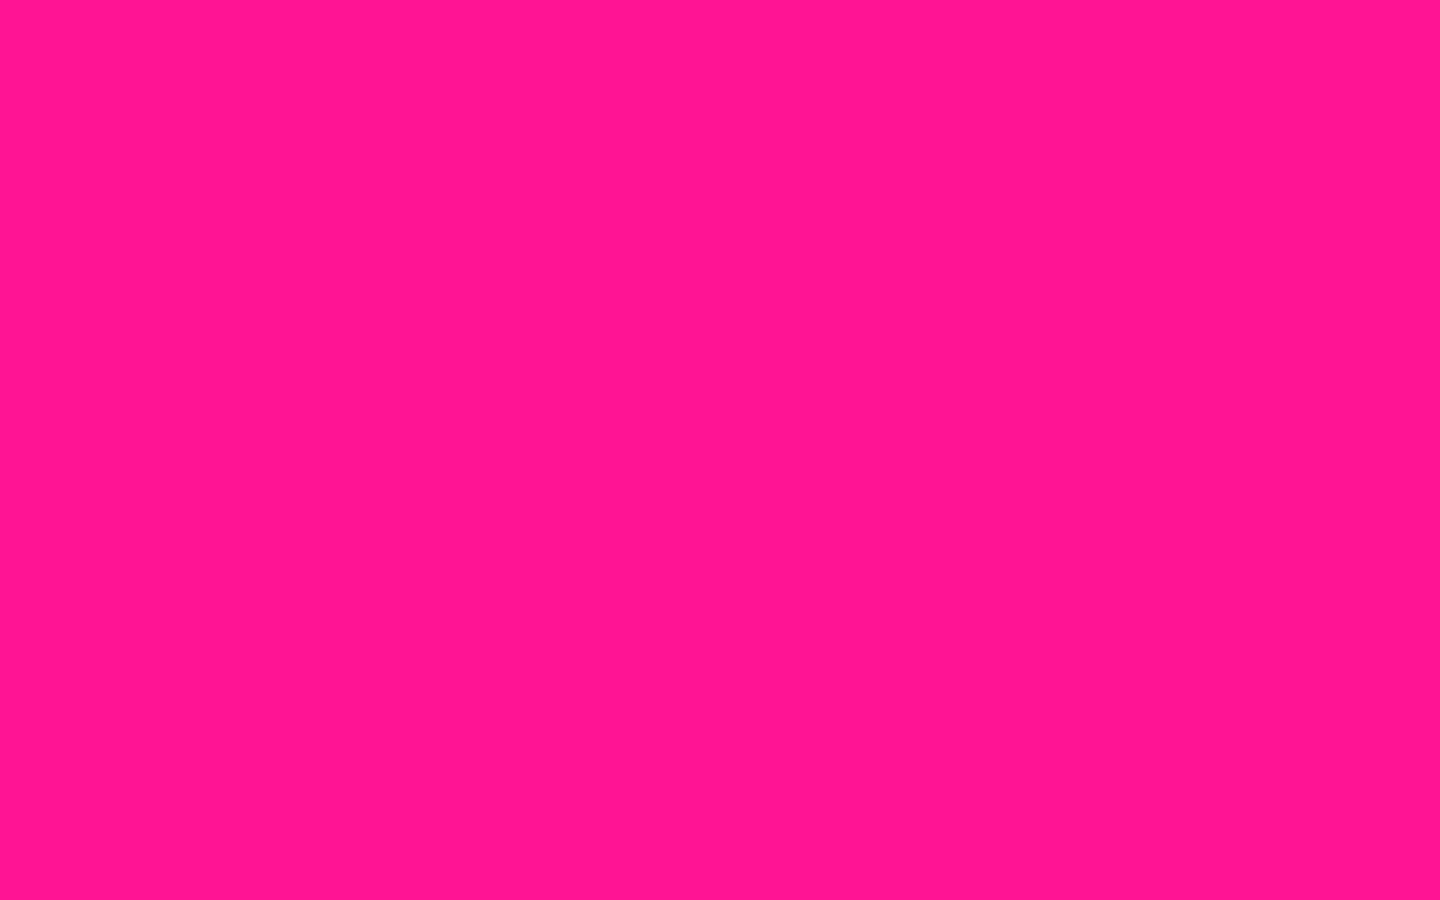 1440x900 Deep Pink Solid Color Background